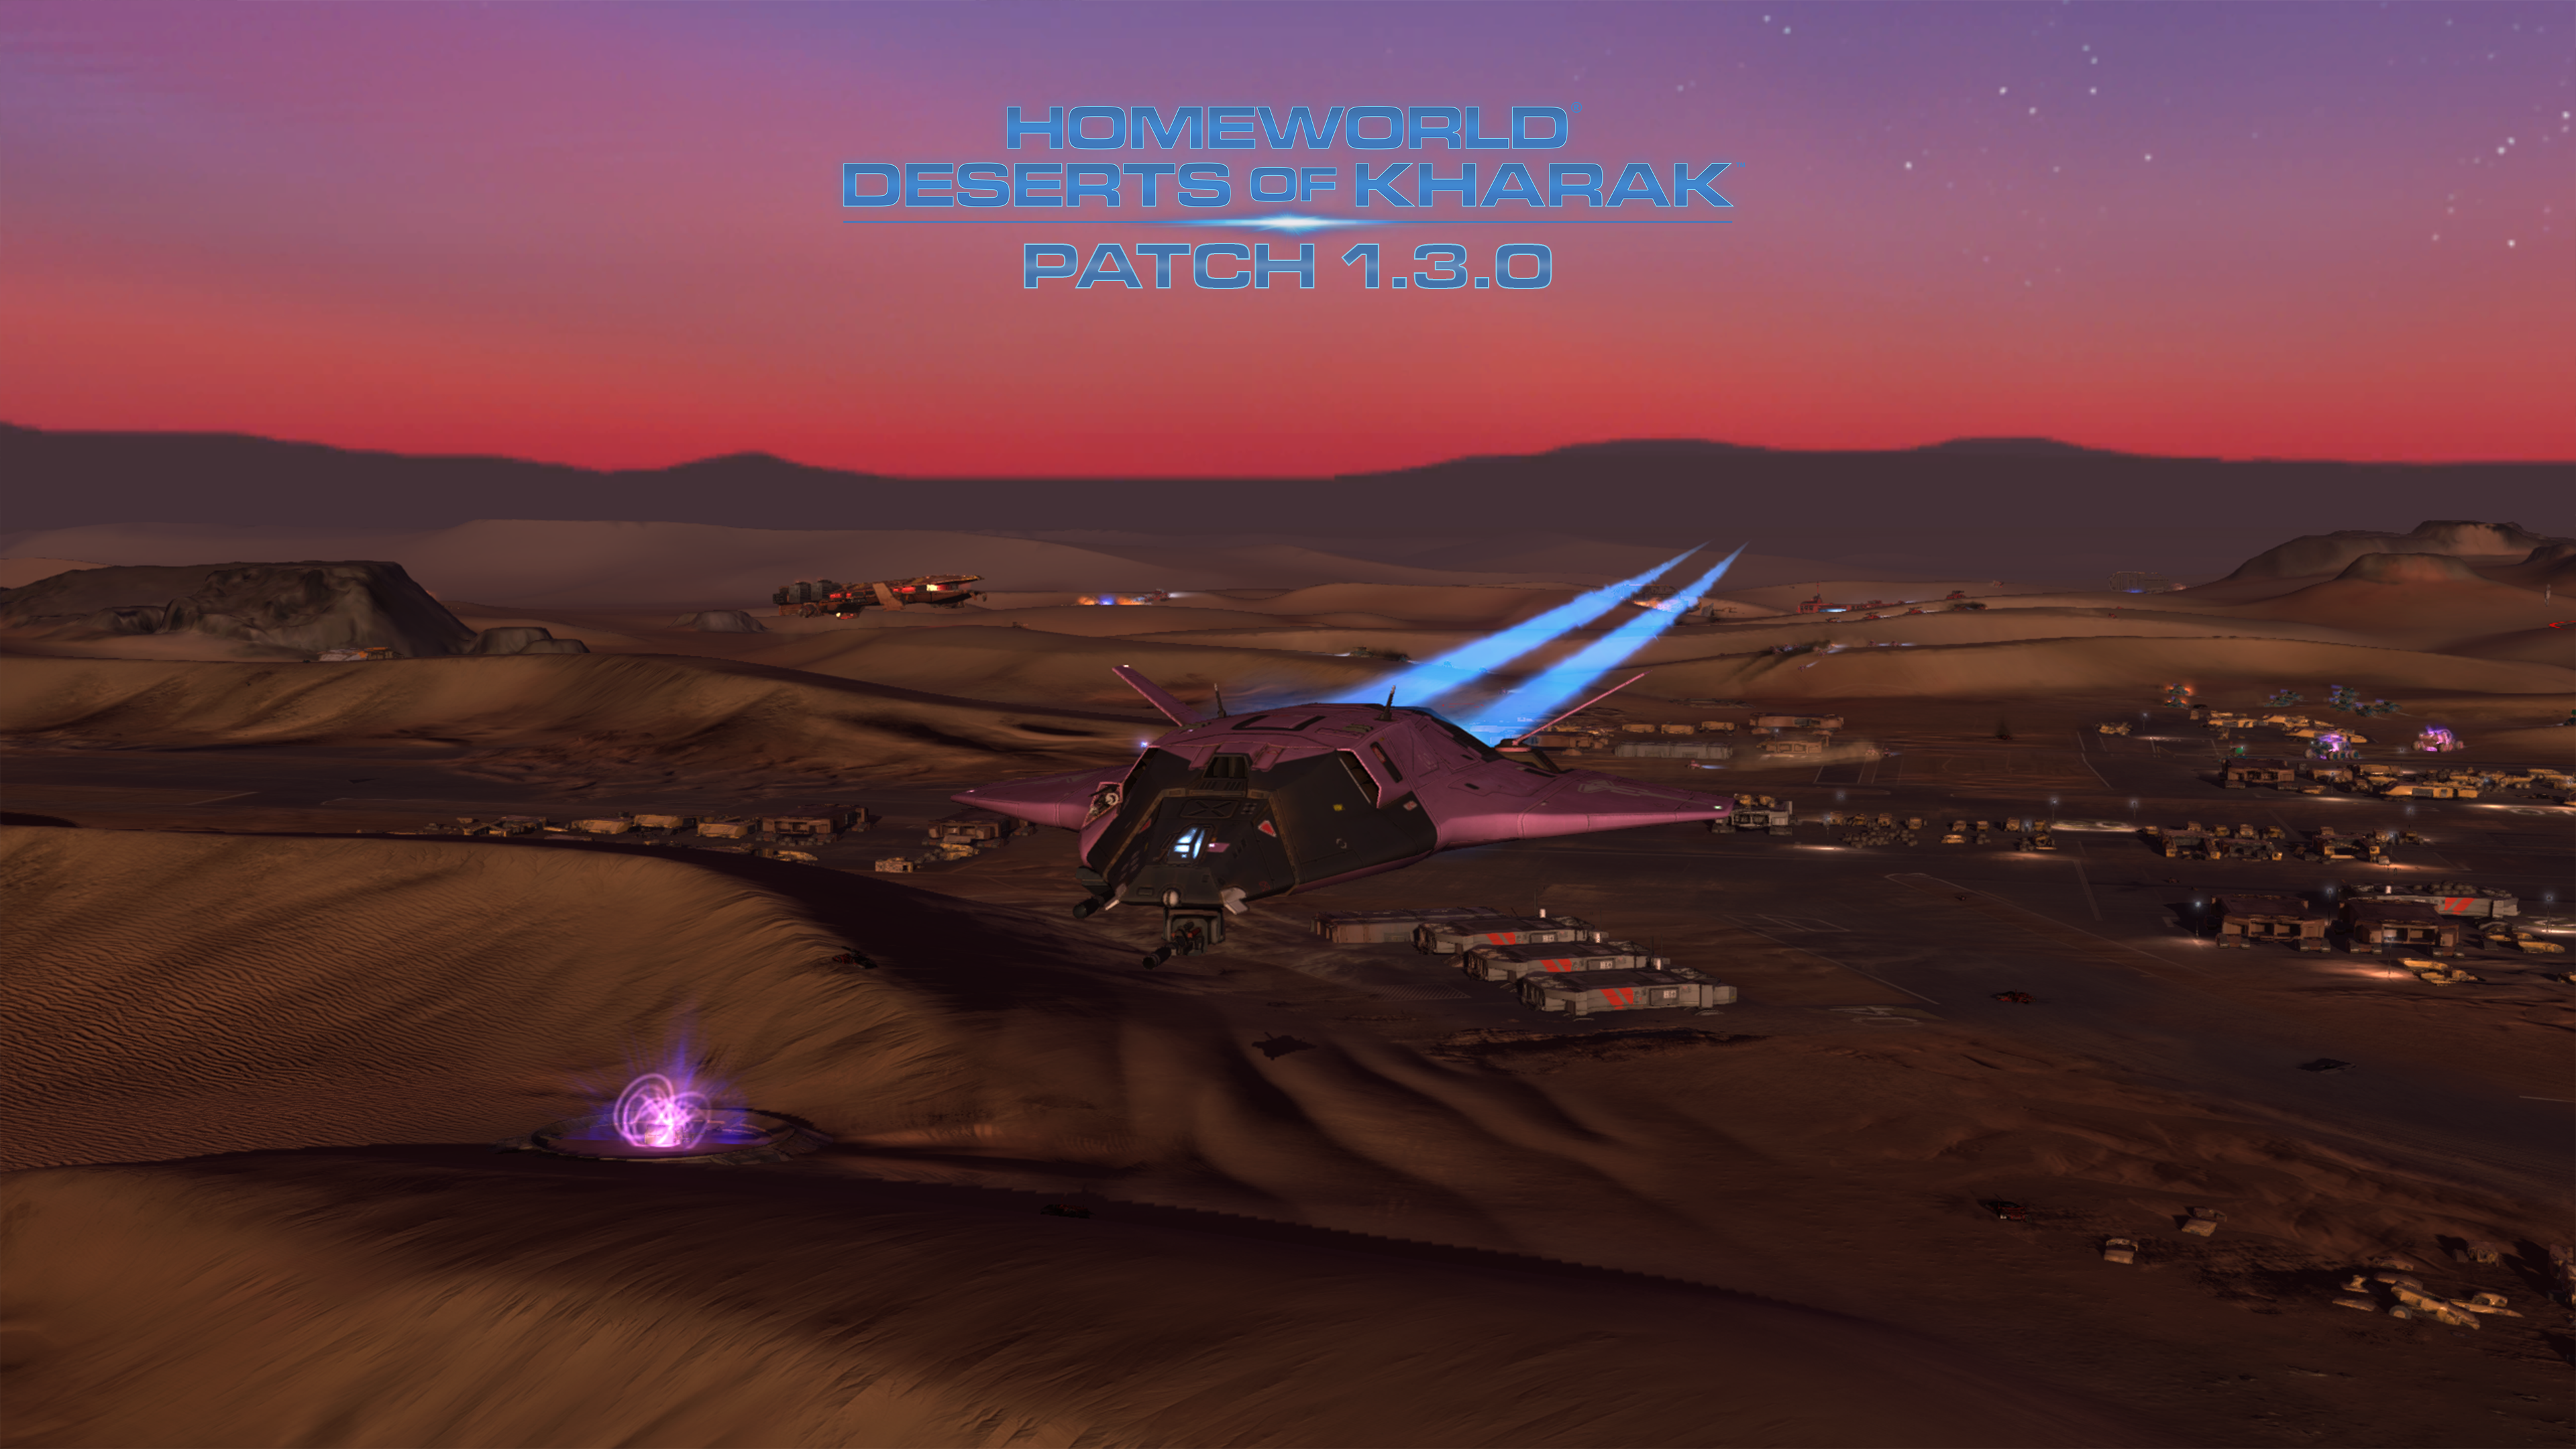 homeworld 2 patch 1.1